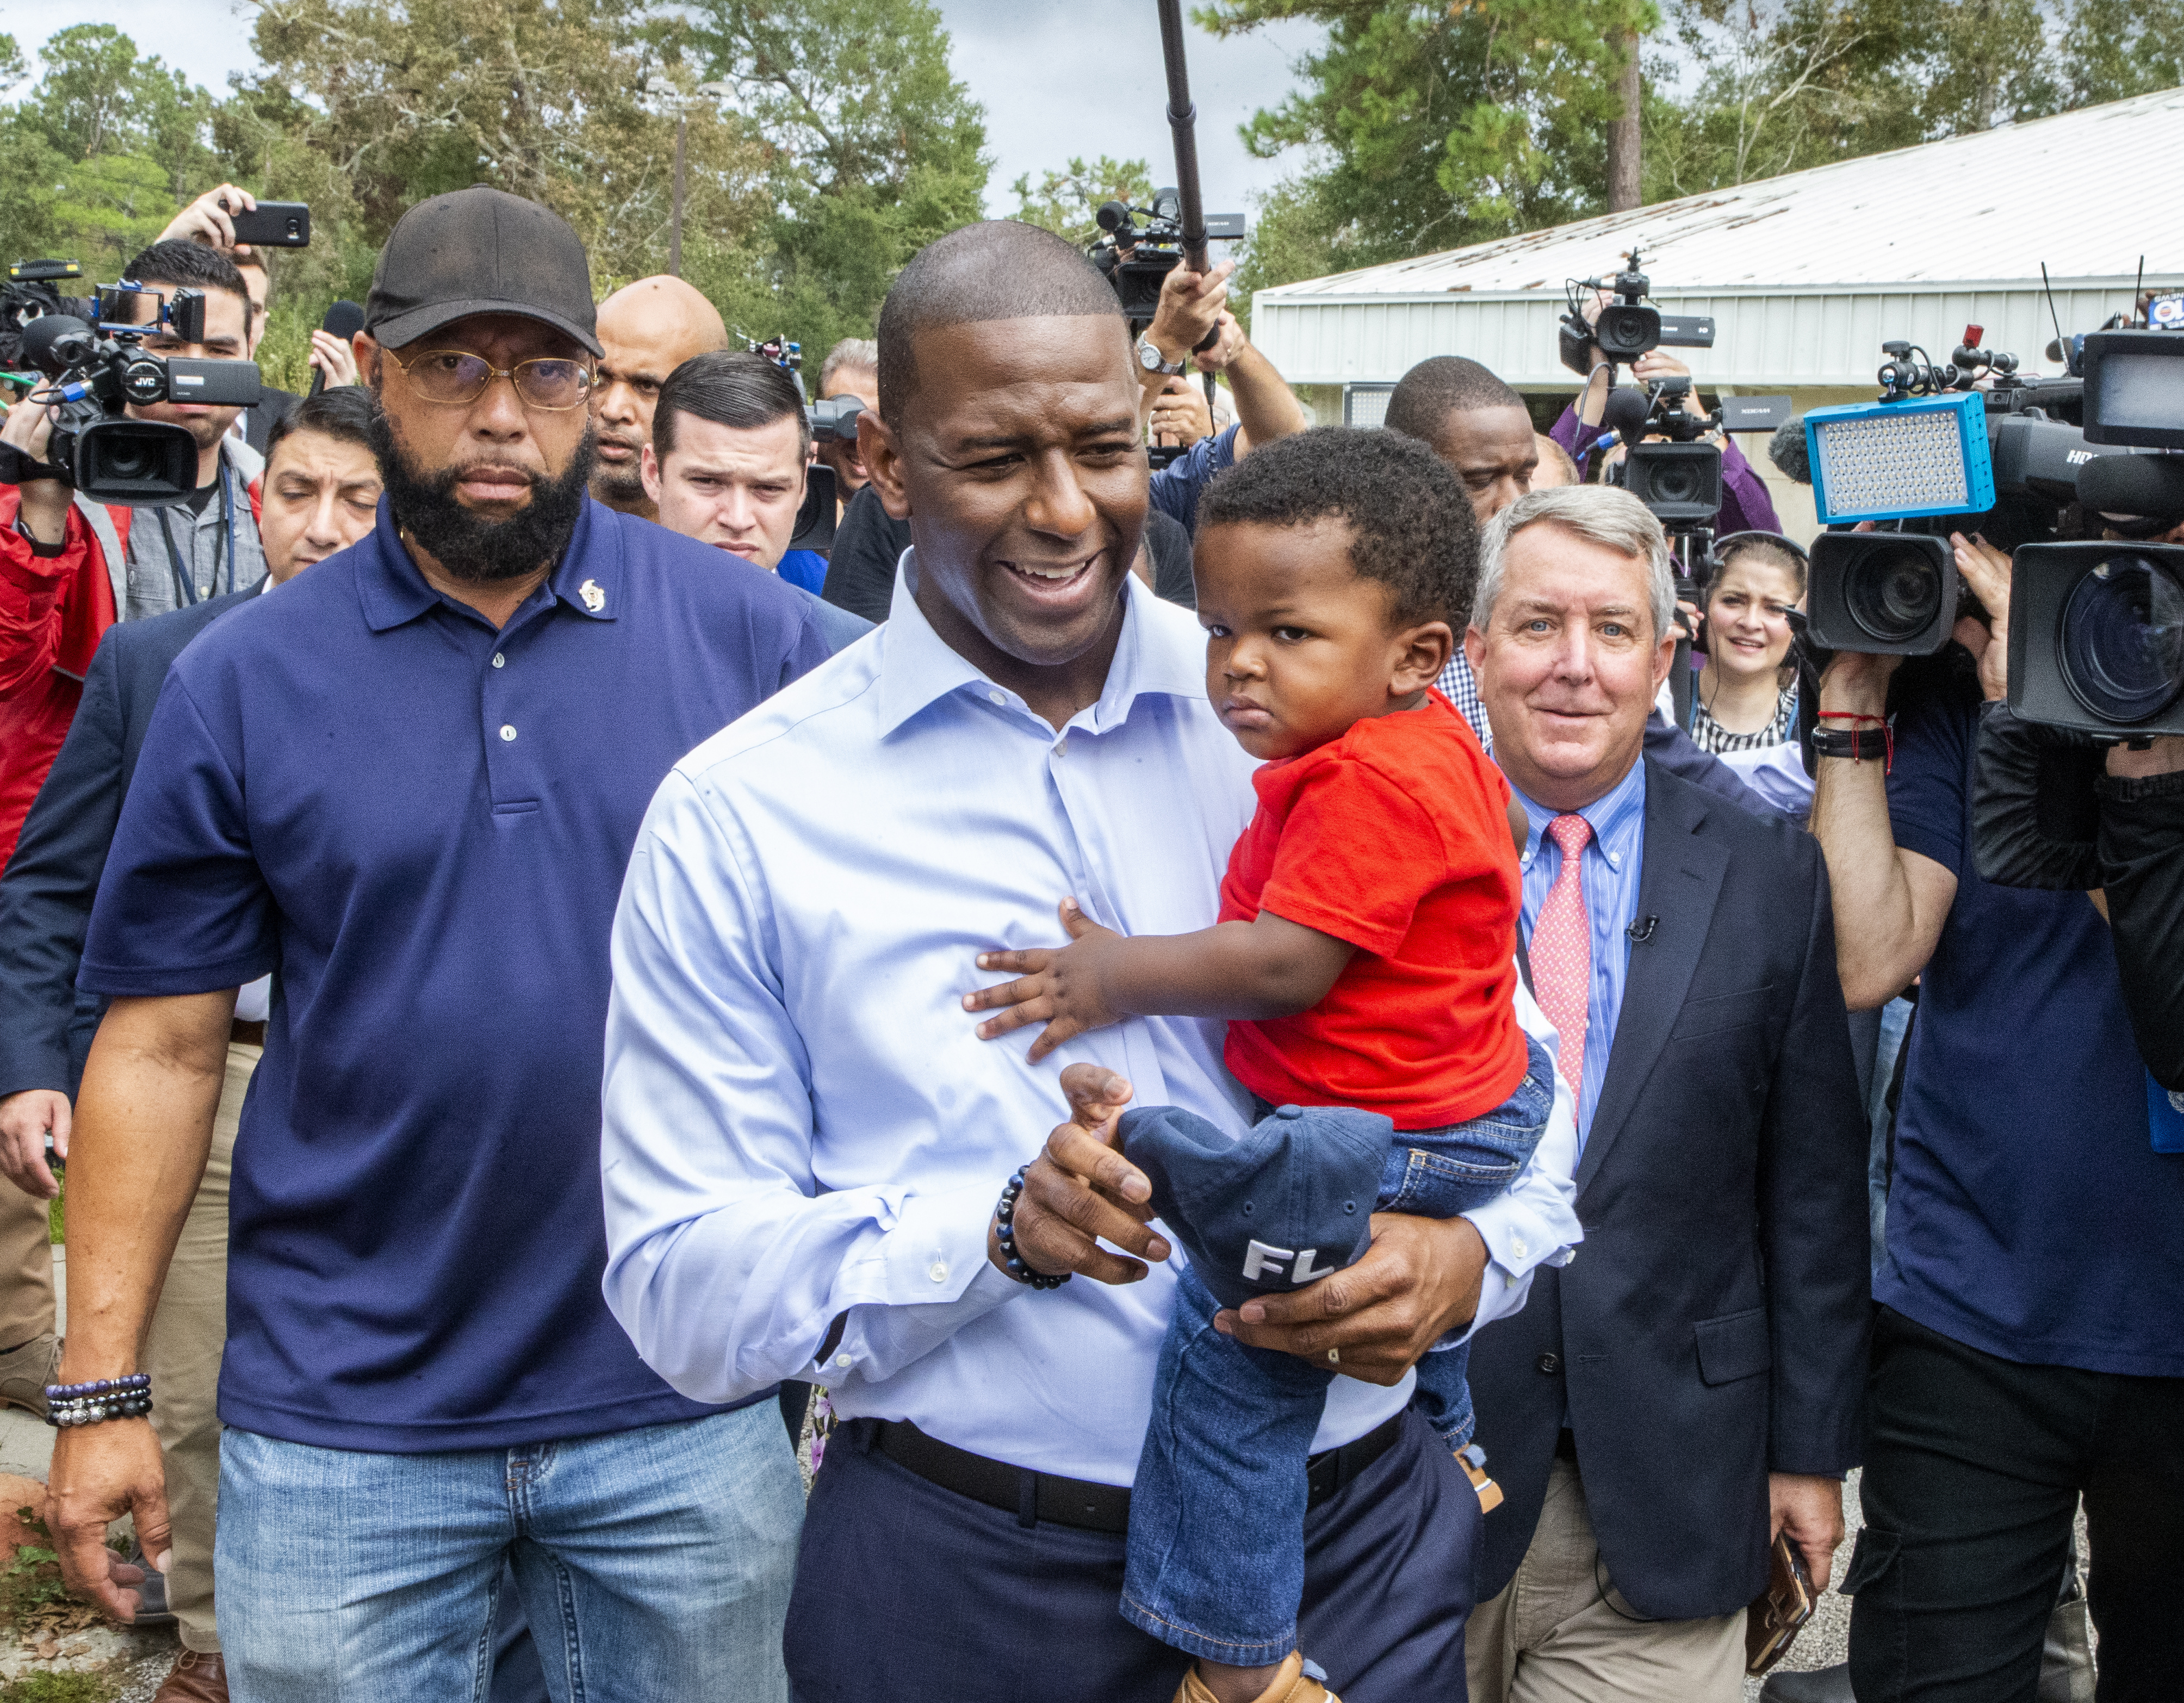 TALLAHASSEE, FL - NOVEMBER 06: Tallahassee mayor and Florida Democratic gubernatorial candidate Andrew Gillum, with his one year old son Davis, walks out after casting his ballot on November 6, 2018 in Tallahassee, Florida. Gillum is in a close race against Republican candidate Ron DeSantis. (Photo by Mark Wallheiser/Getty Images)